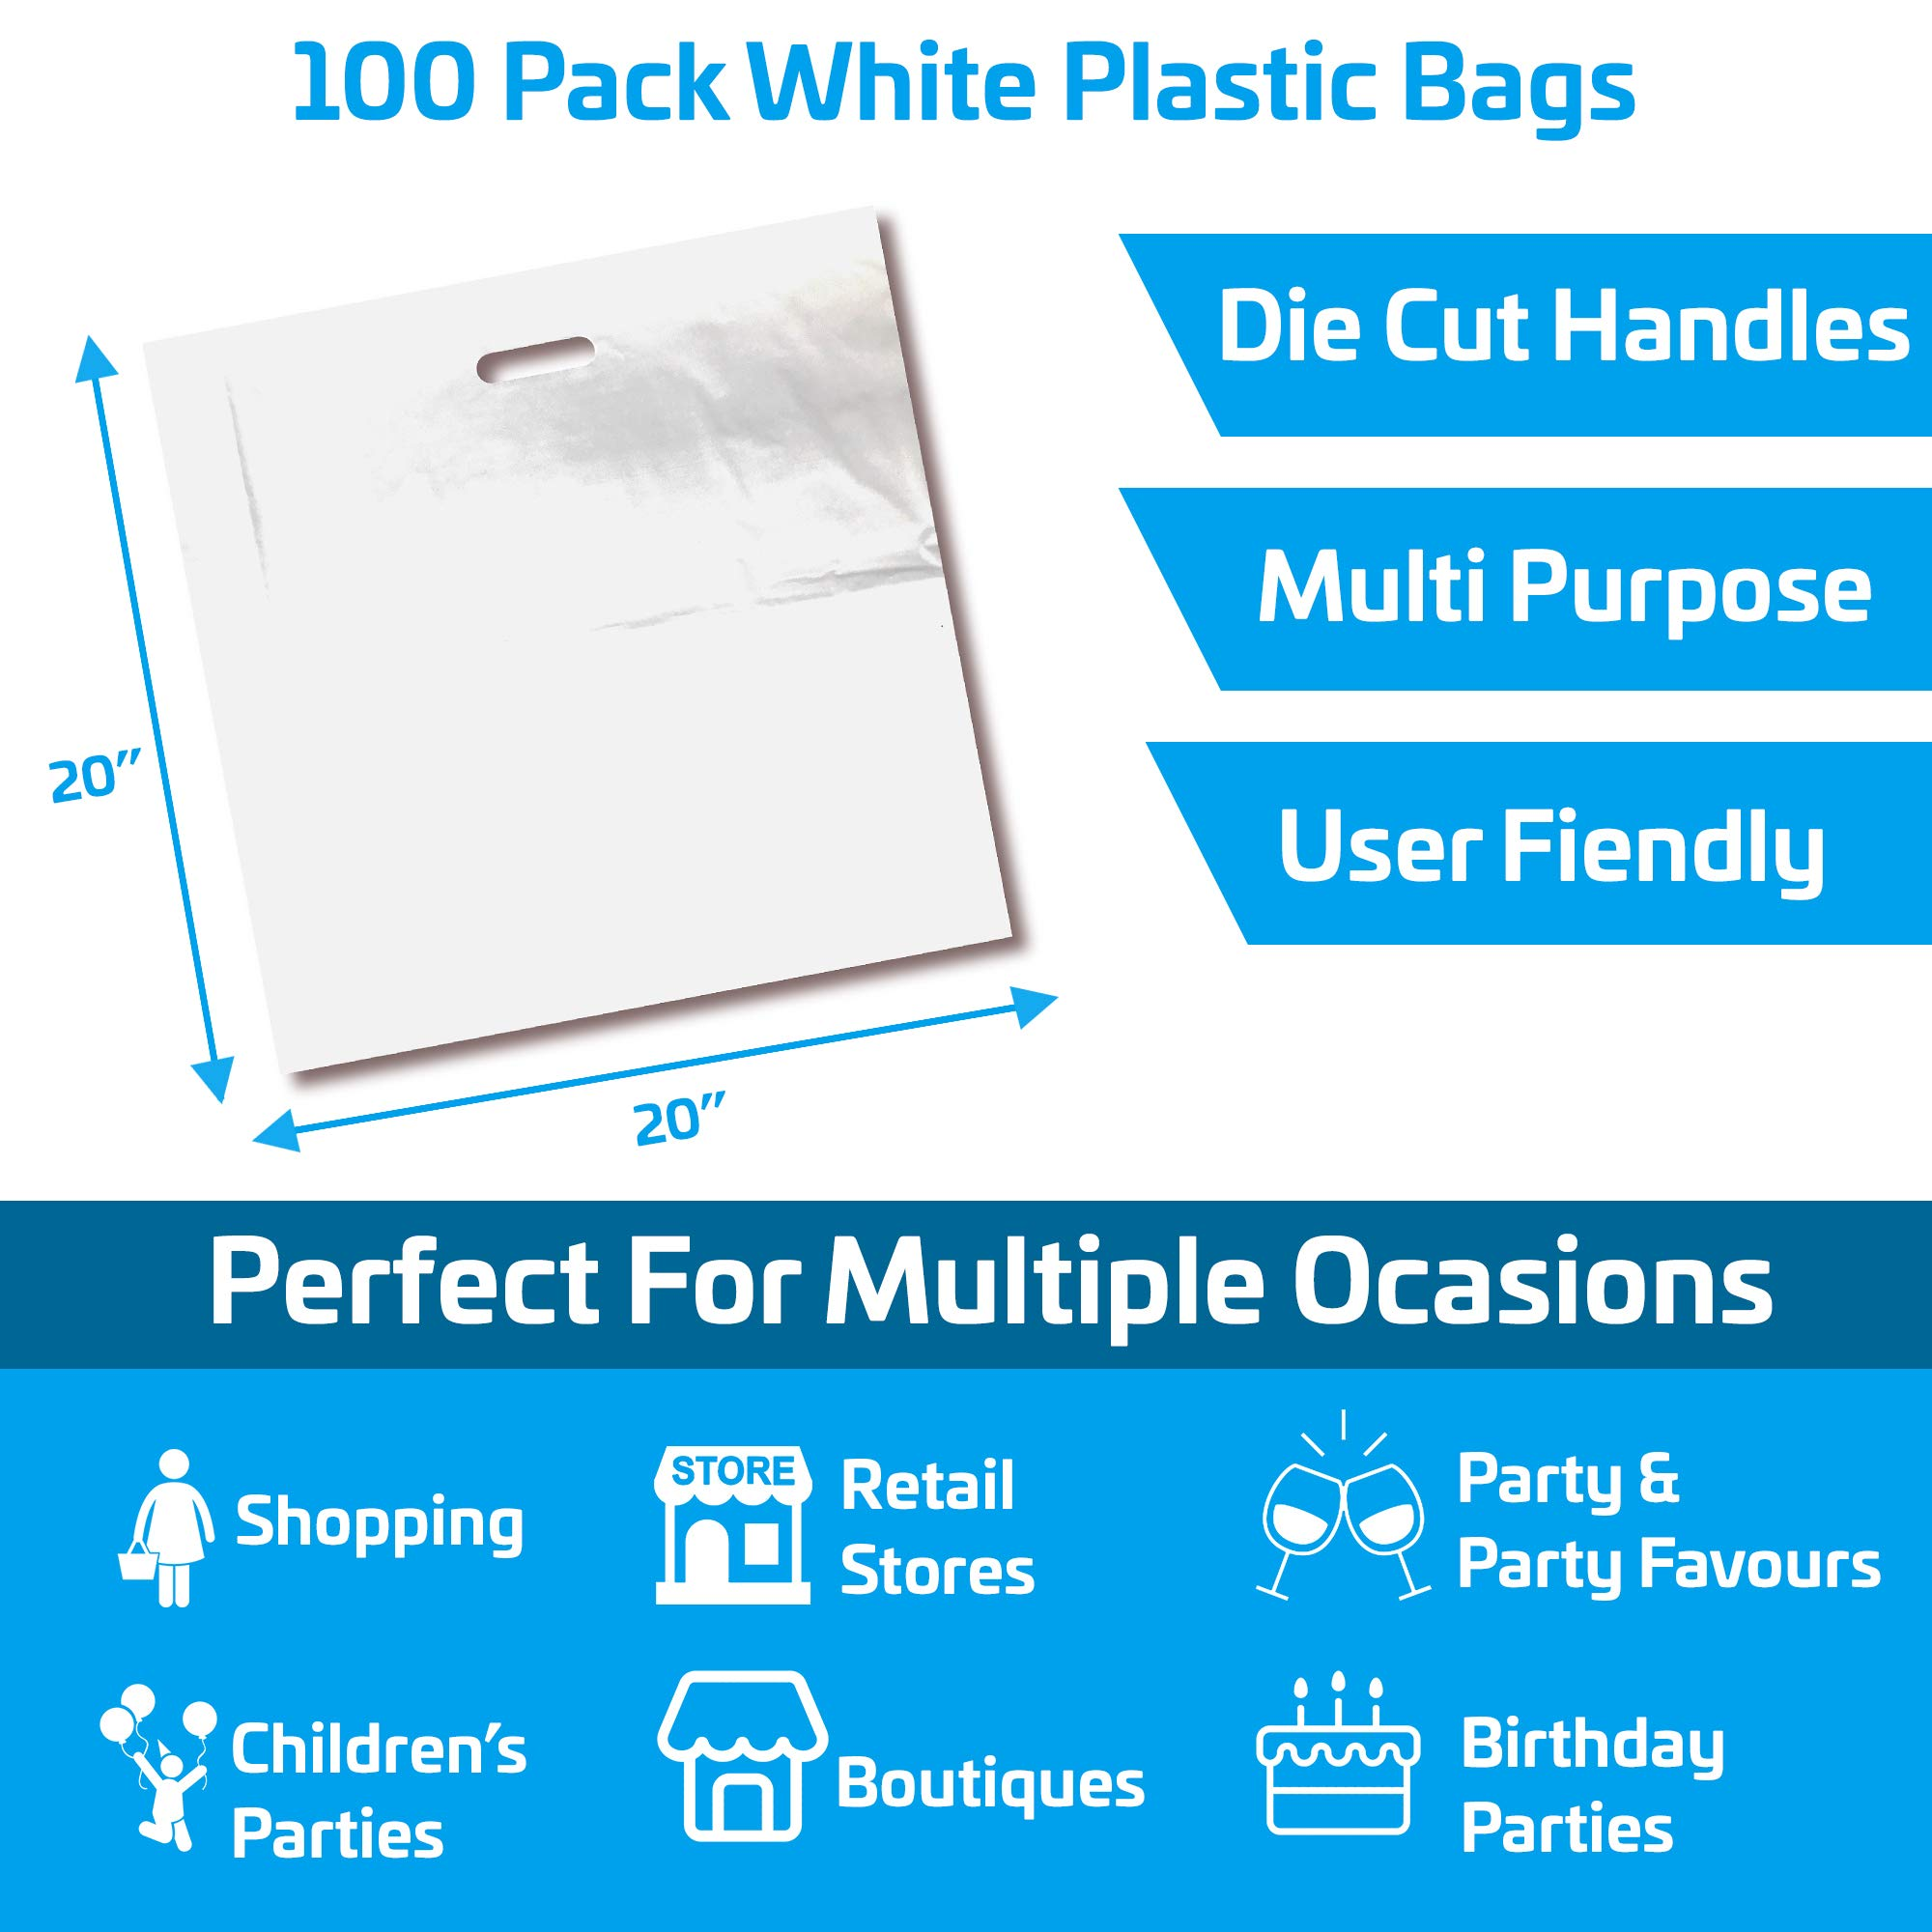 100 Pack 20'' x 20'' with 2 mil Thick Extra Large White Merchandise Plastic Glossy Retail Bags | Die Cut Handles | Perfect for Shopping, Large Packages, Children Toys | Color White | 100% Recyclable by Popular Plastic Bags (Image #2)